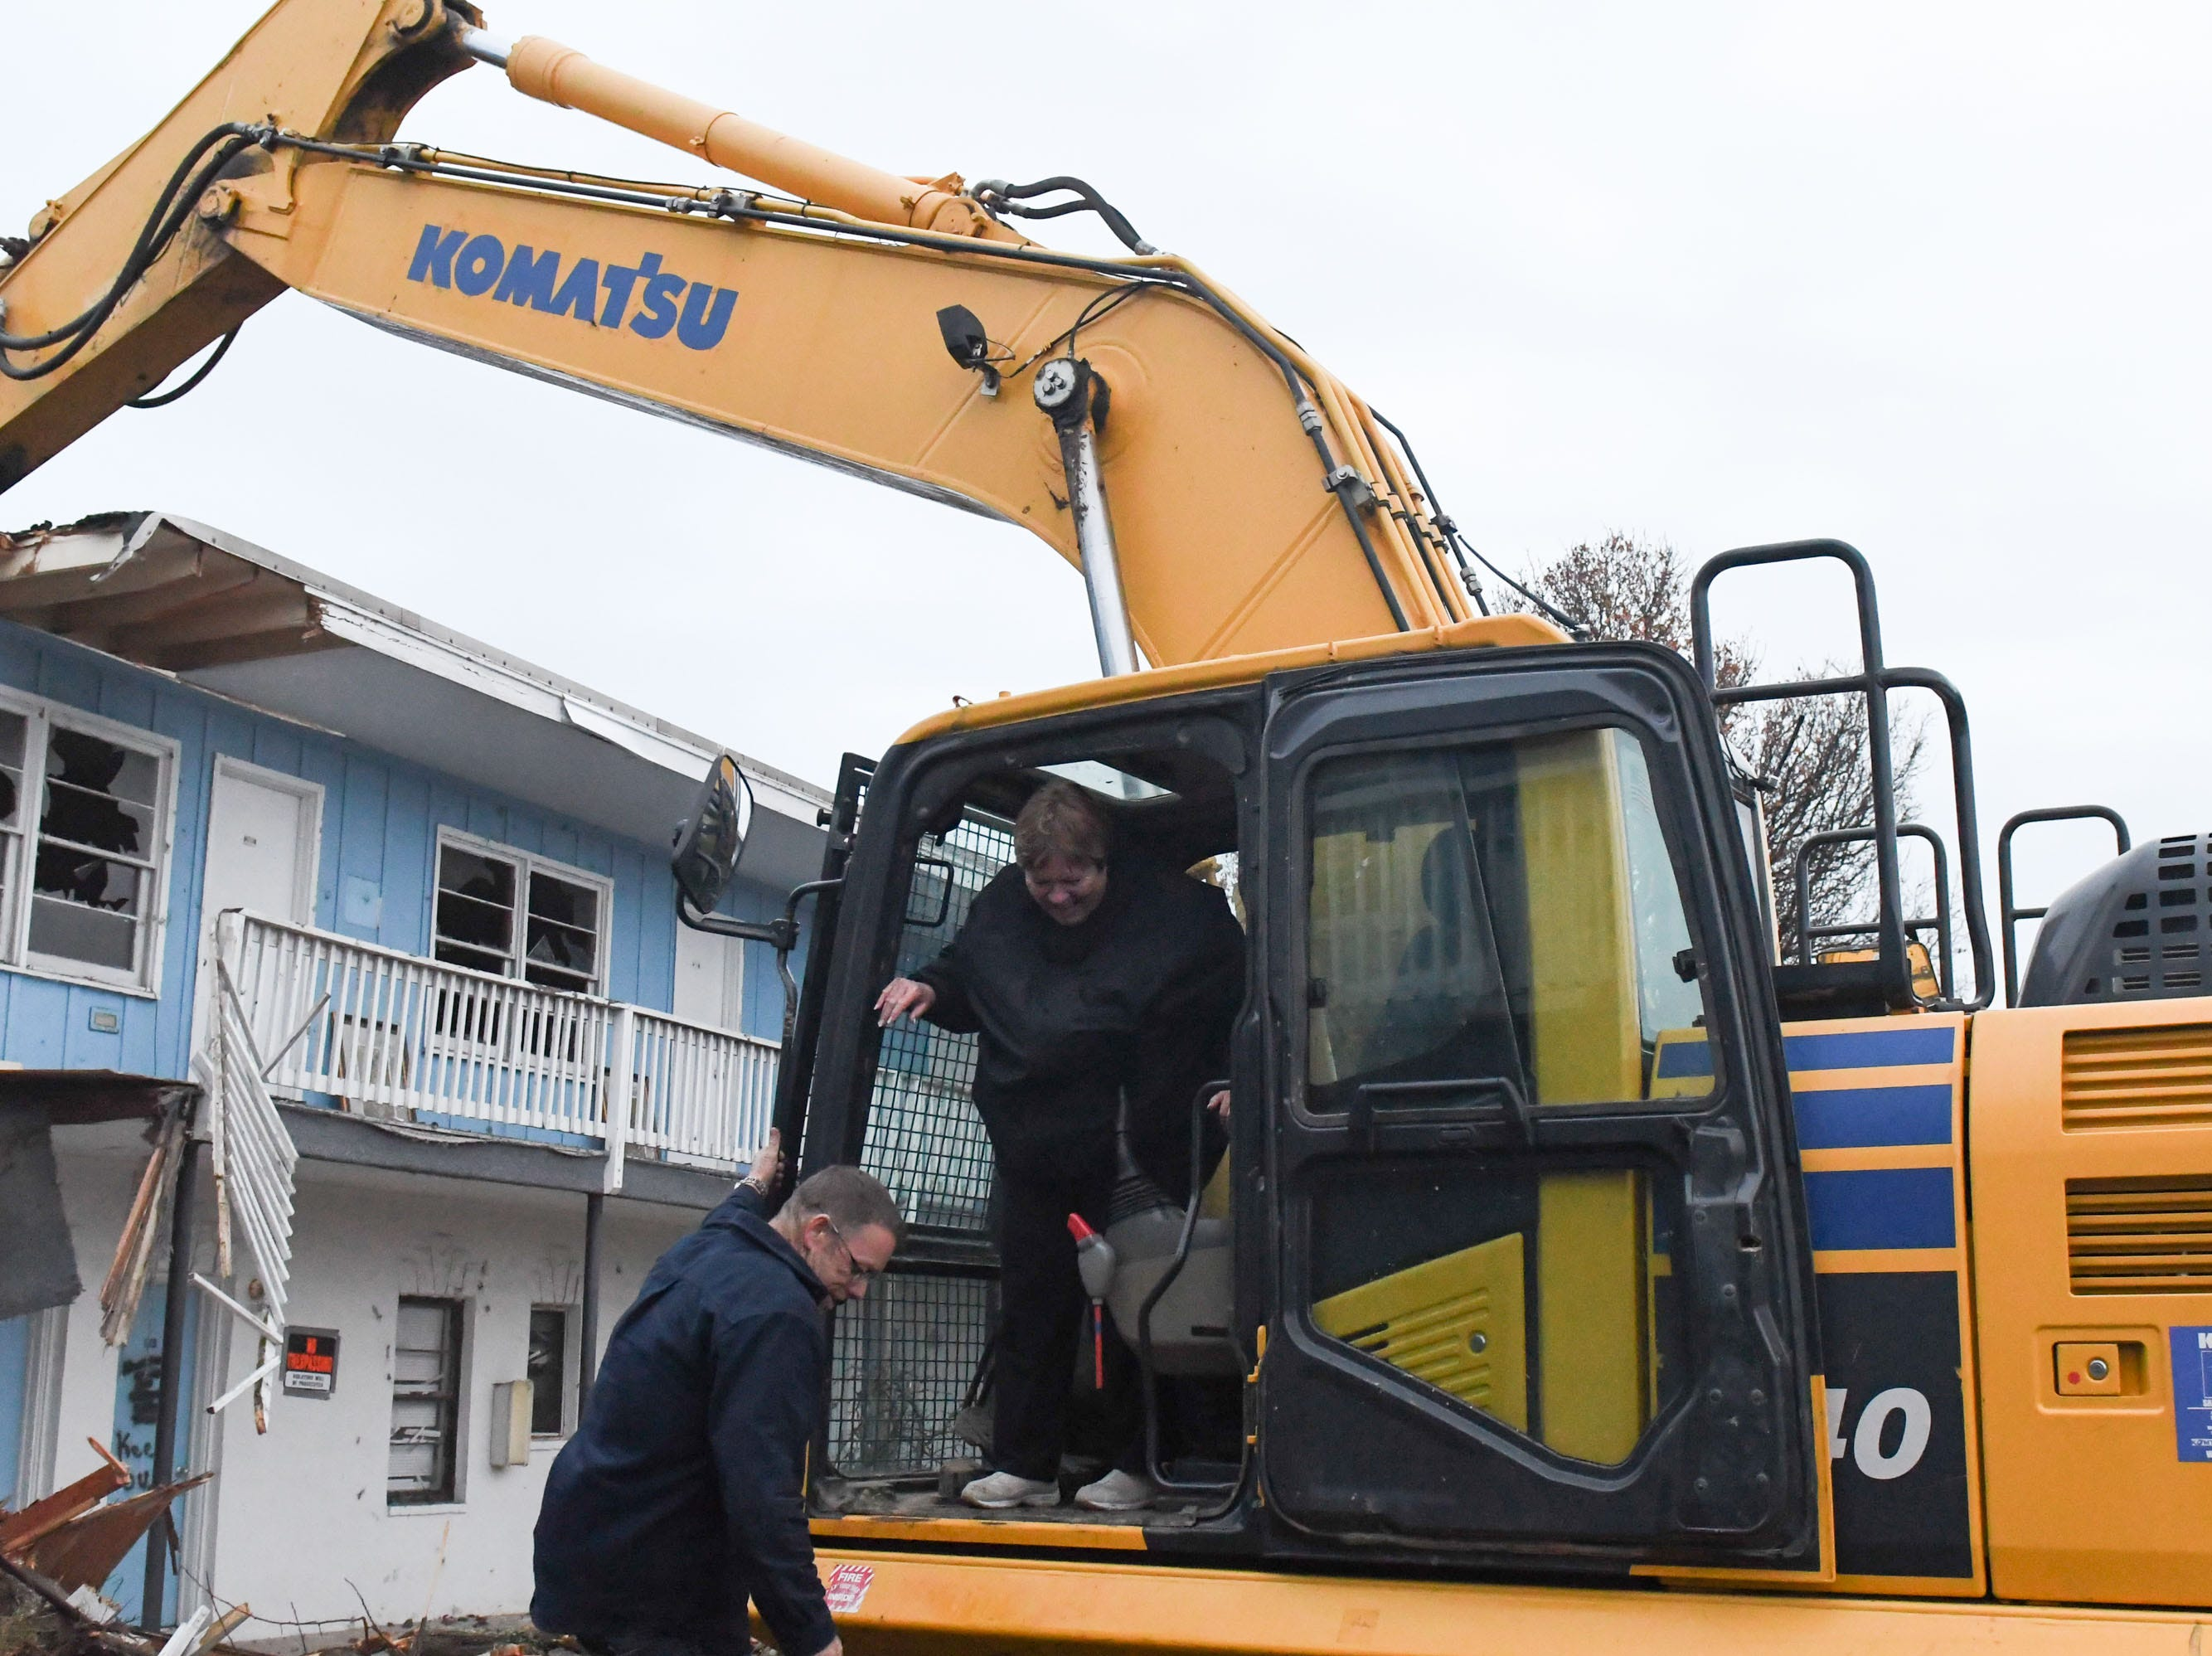 Former owner Susan Caldwell said good bye to the Sands Motel located in Fenwick Island, Del. on Thursday, Dec. 20, 2018. She got the opportunity to help start the demolition.